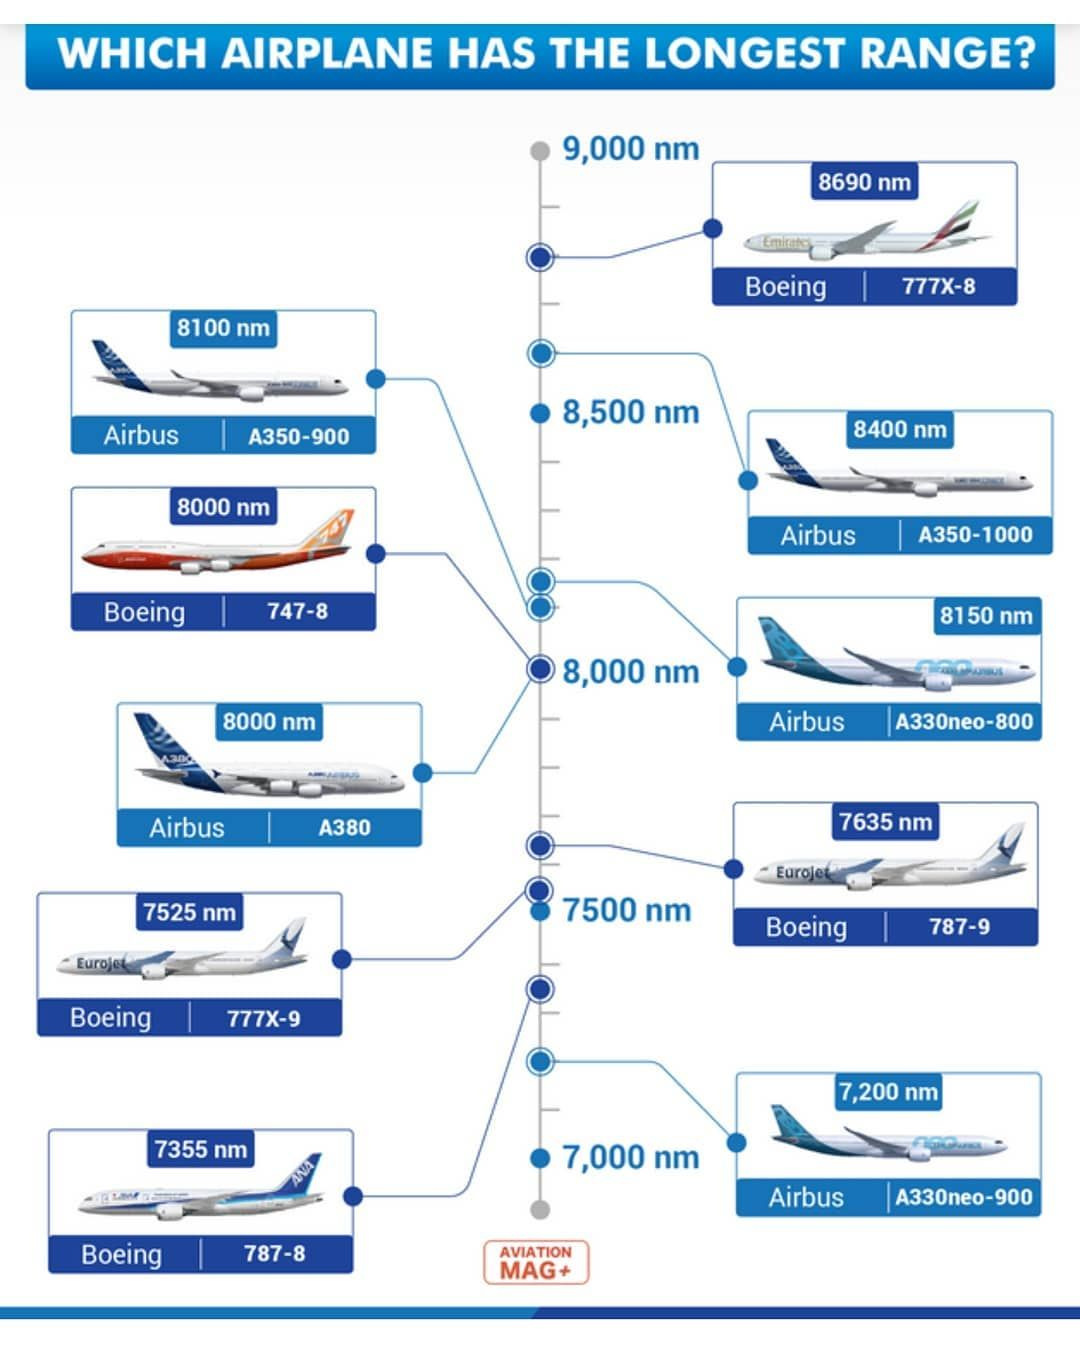 Pin By Swatcat On Airbus A350 Boeing 747 8 Aviation Airbus